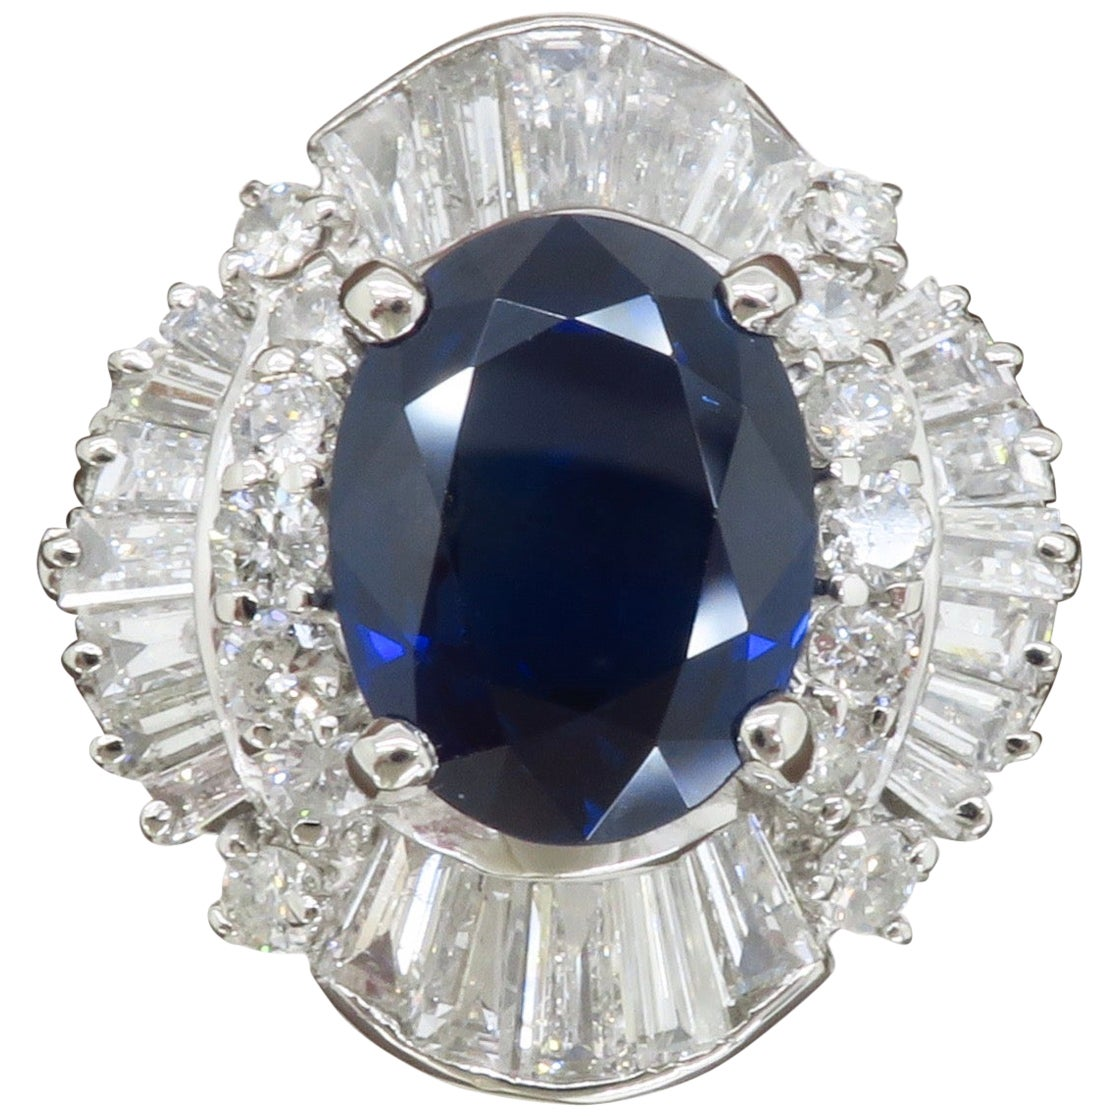 Incredible Blue Sapphire and Diamond Ballerina Style Ring Made in Platinum